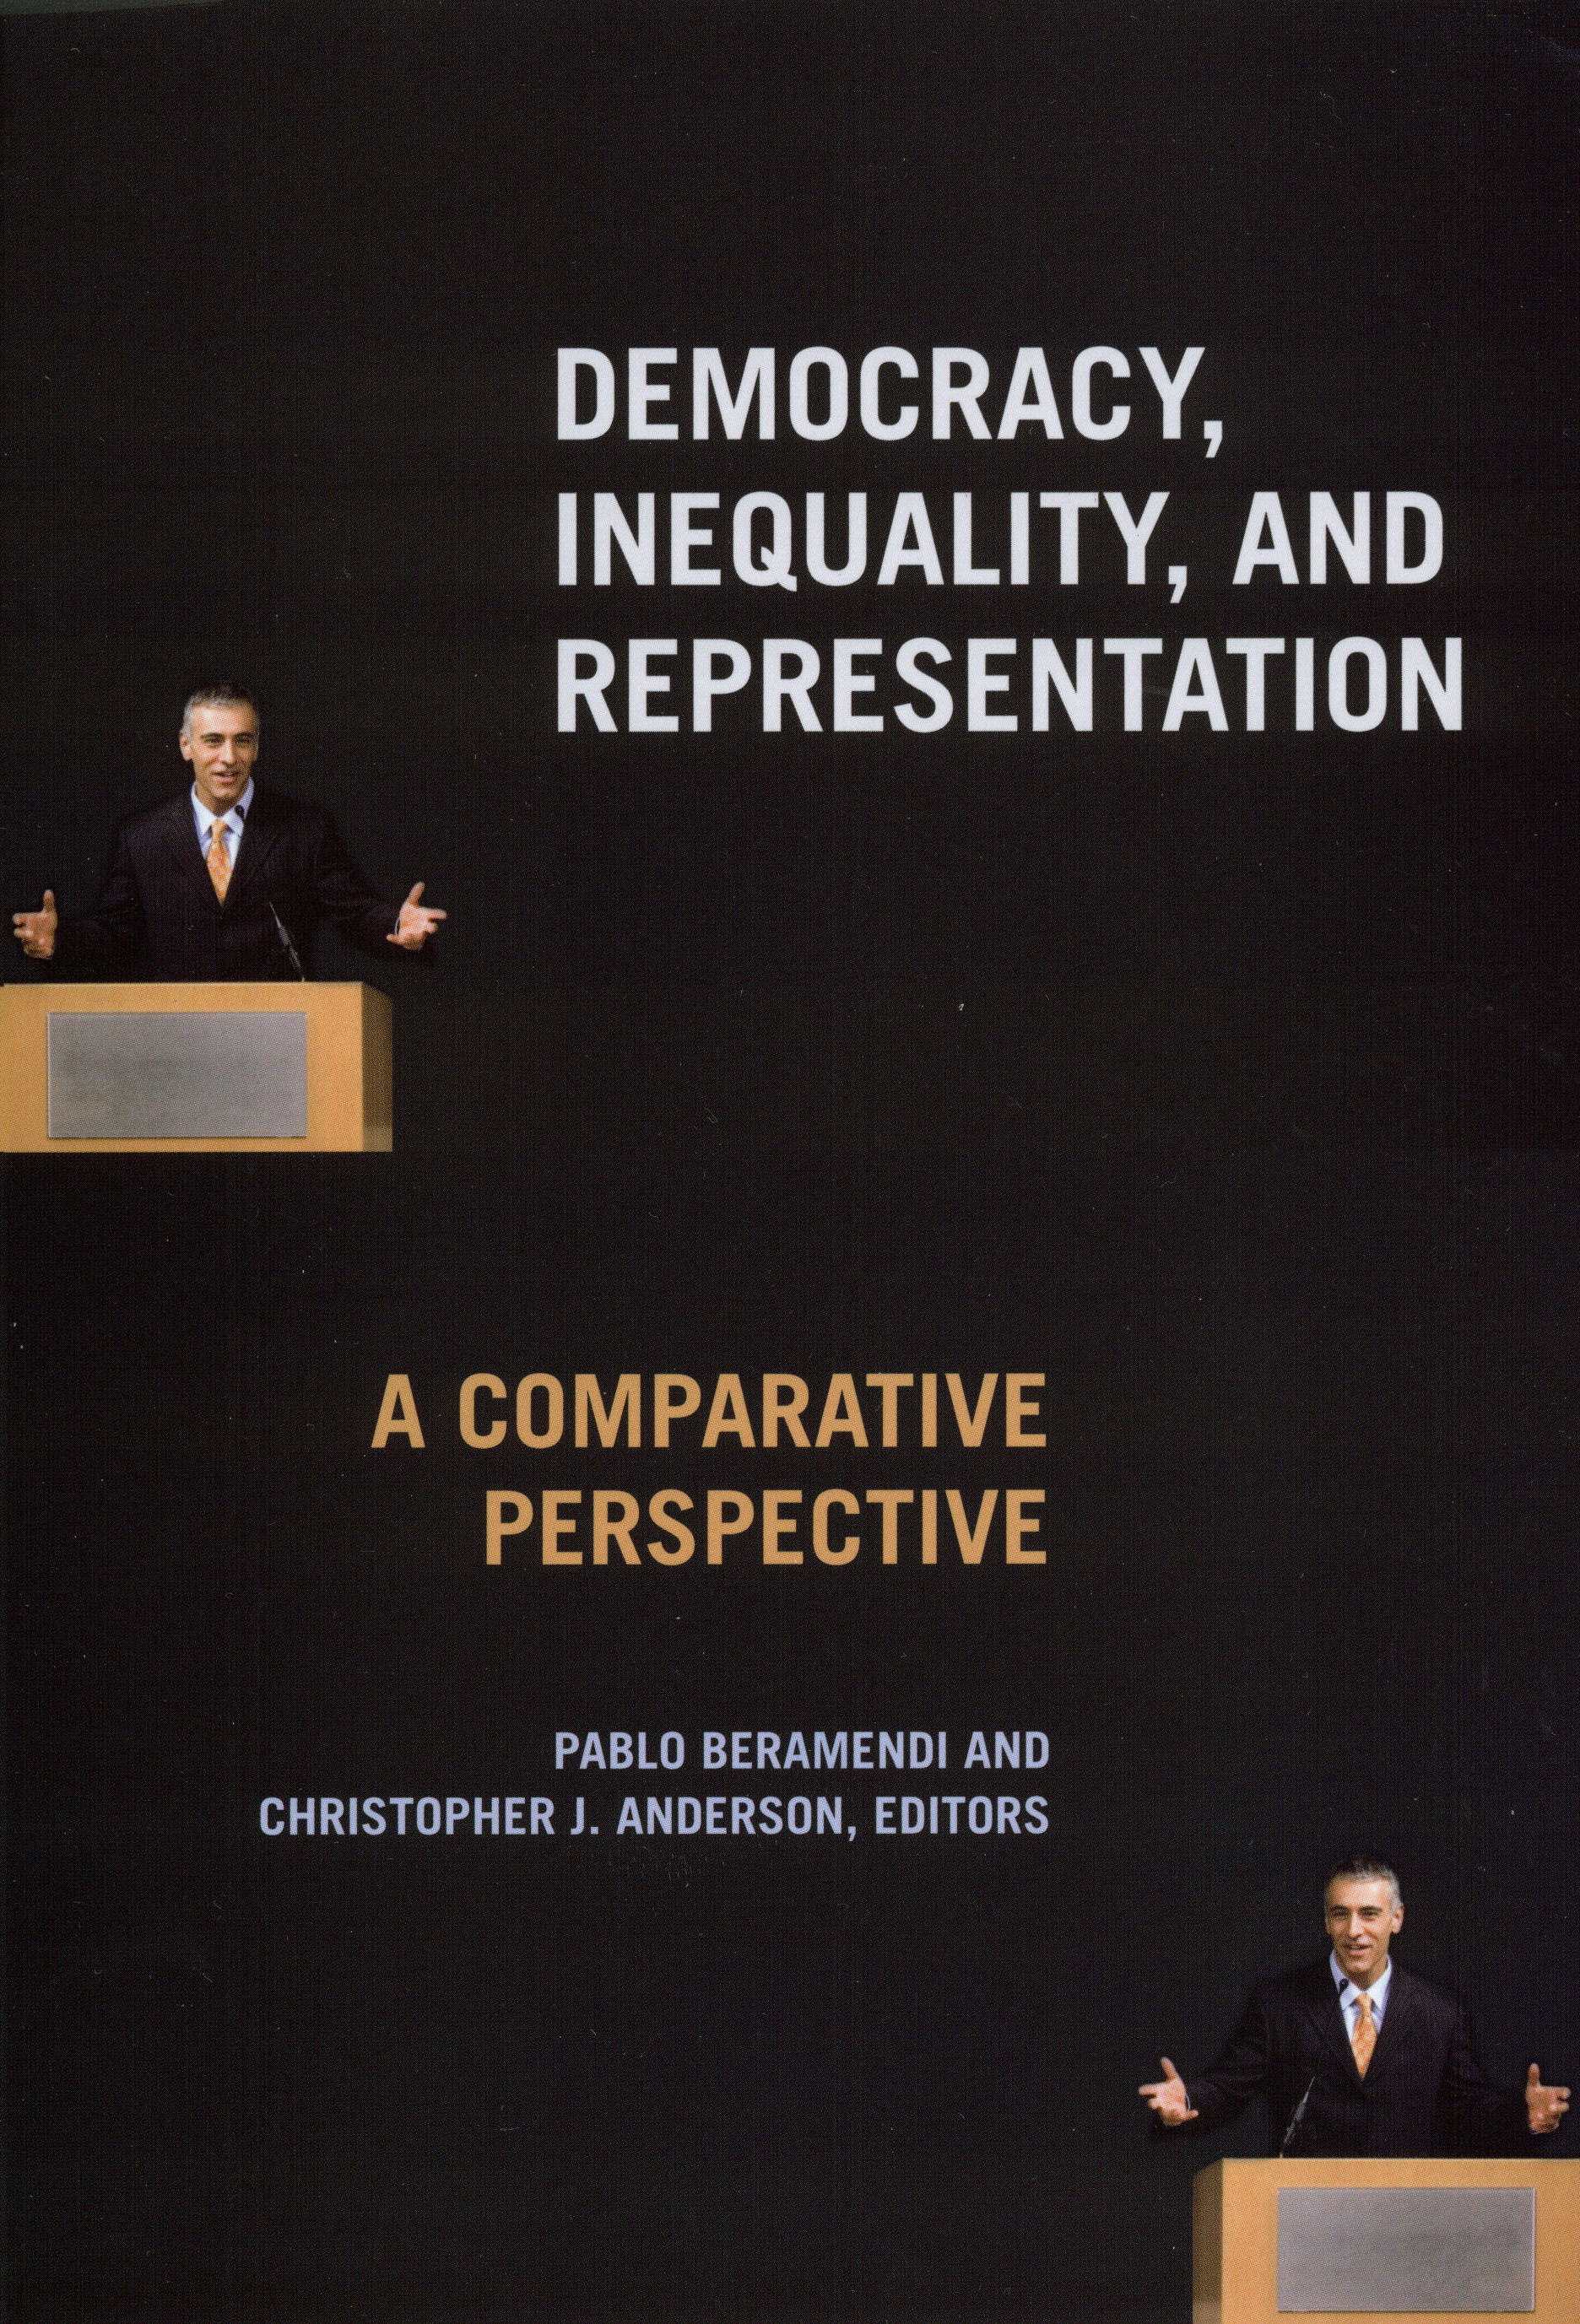 Democracy, Inequality, and Representation